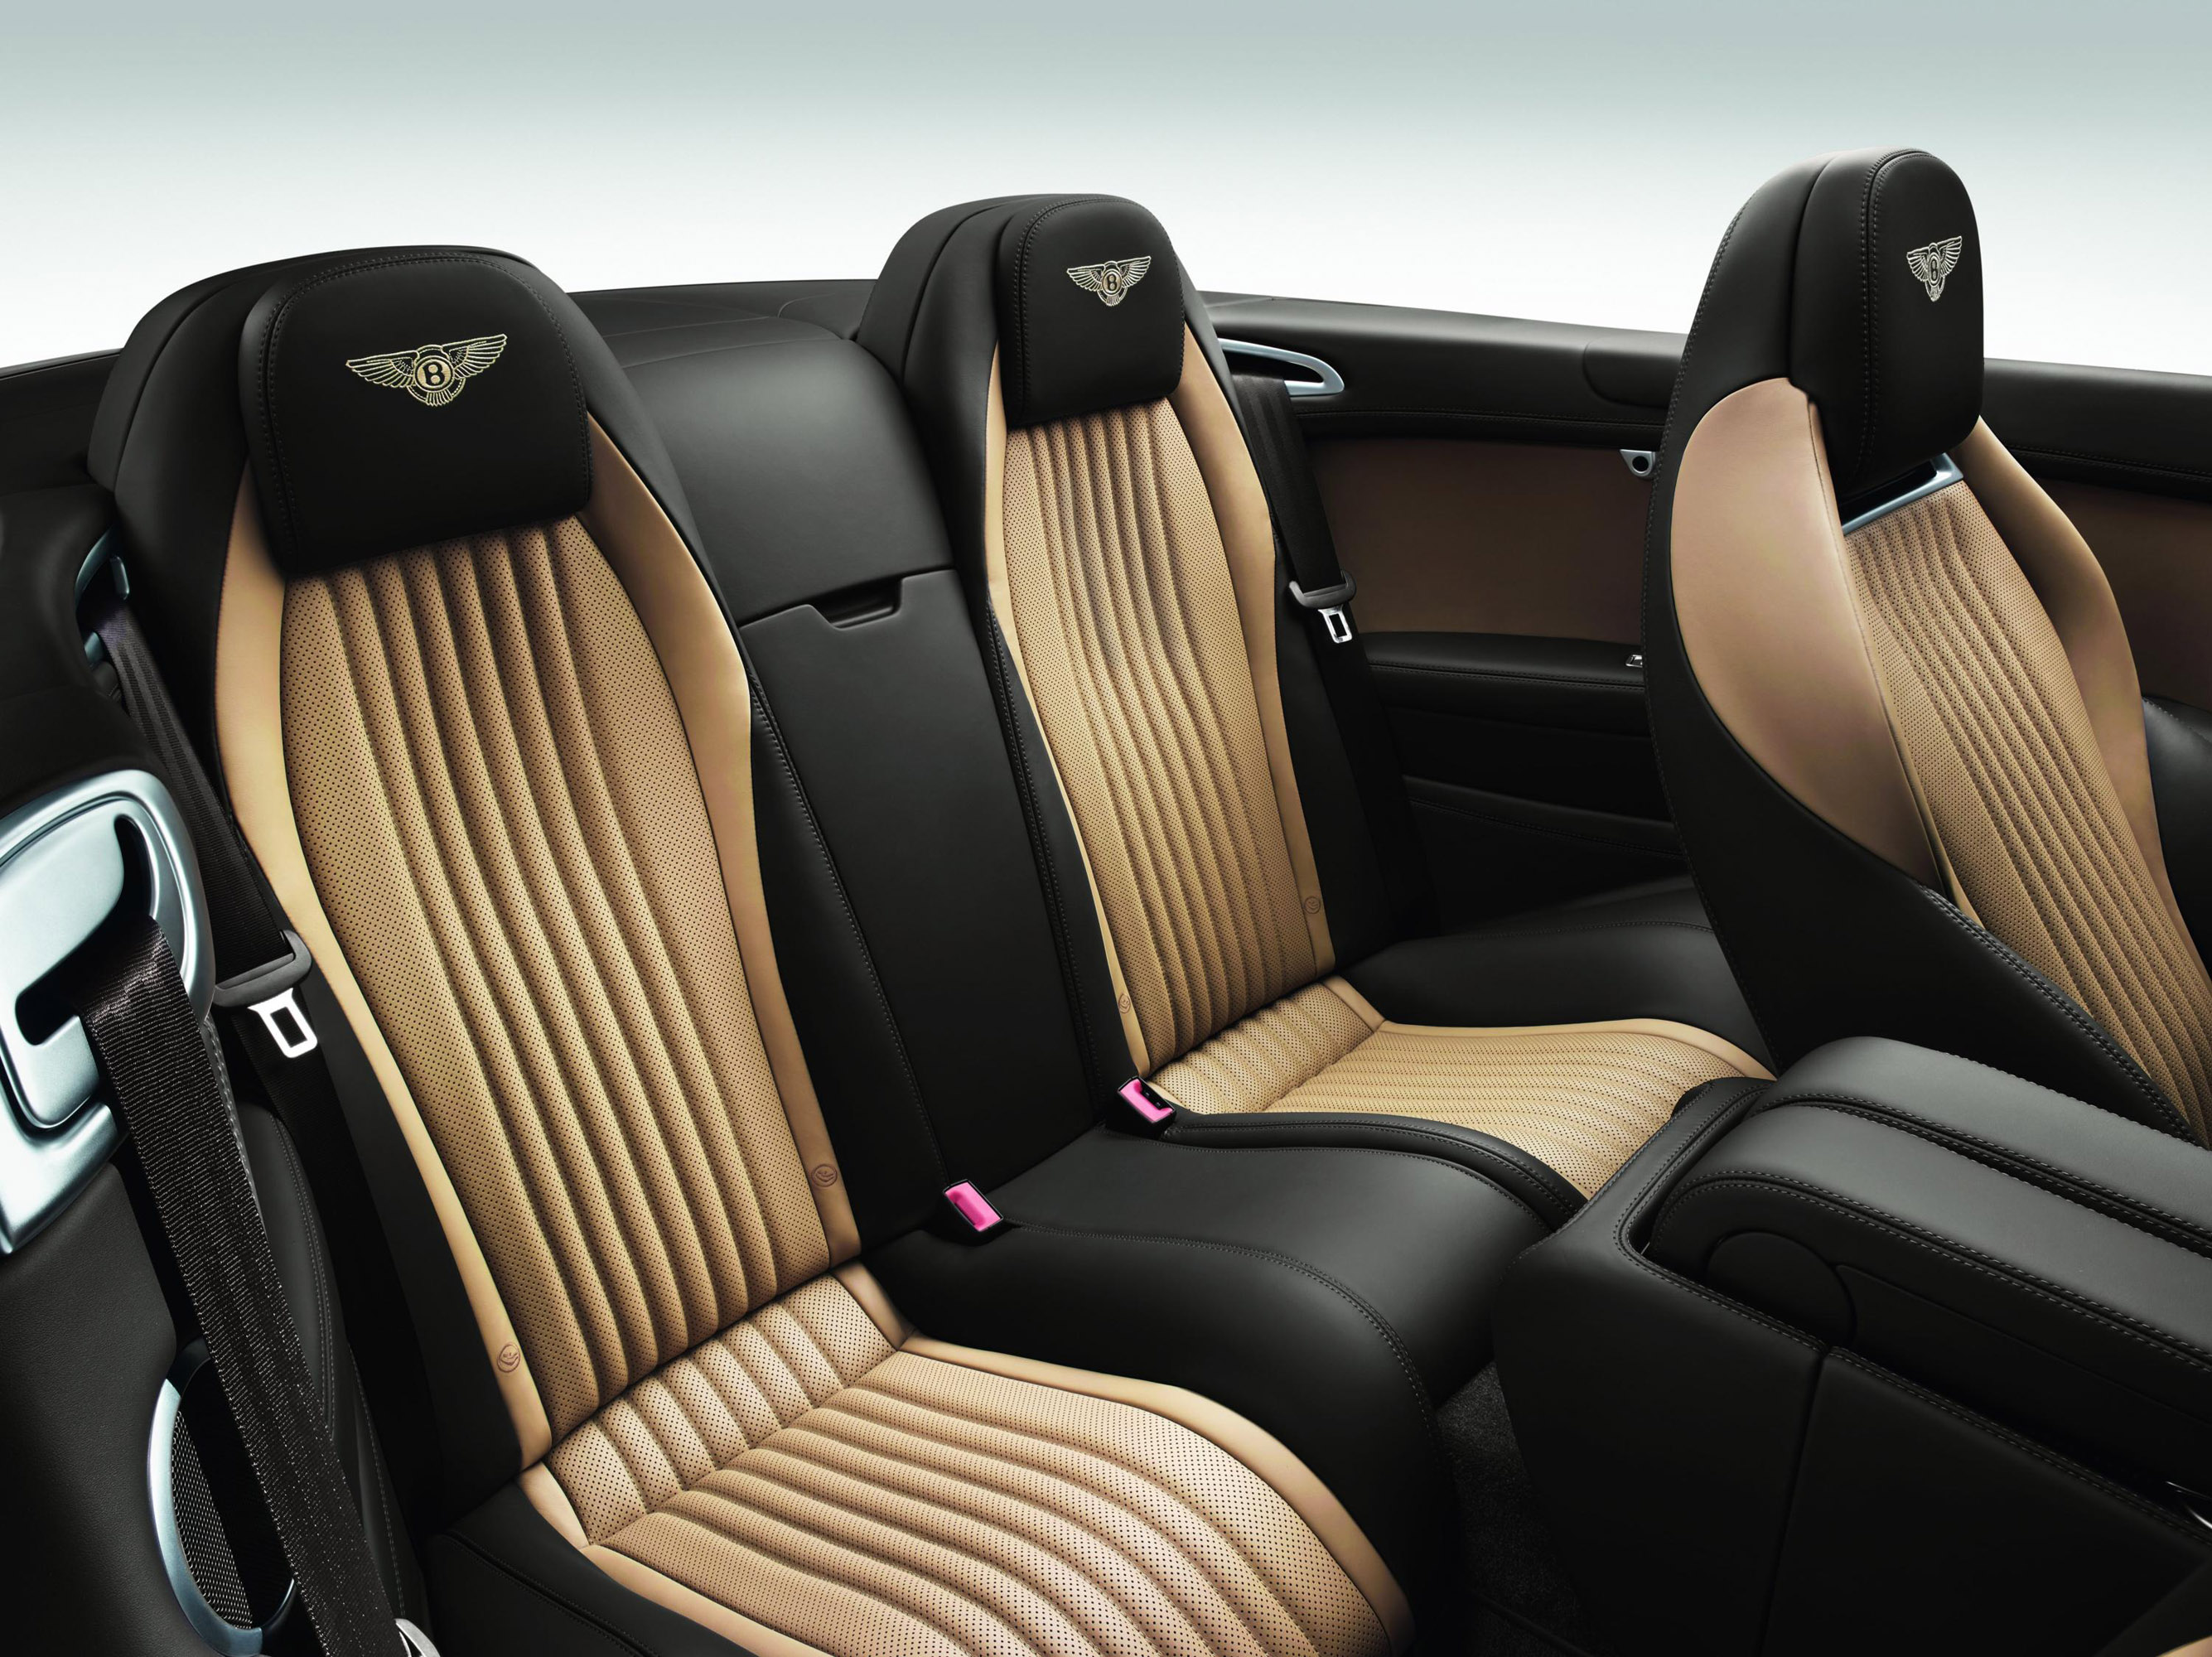 gt speed top edition does mulliner a convertible how by much continental cars cost bentley galene